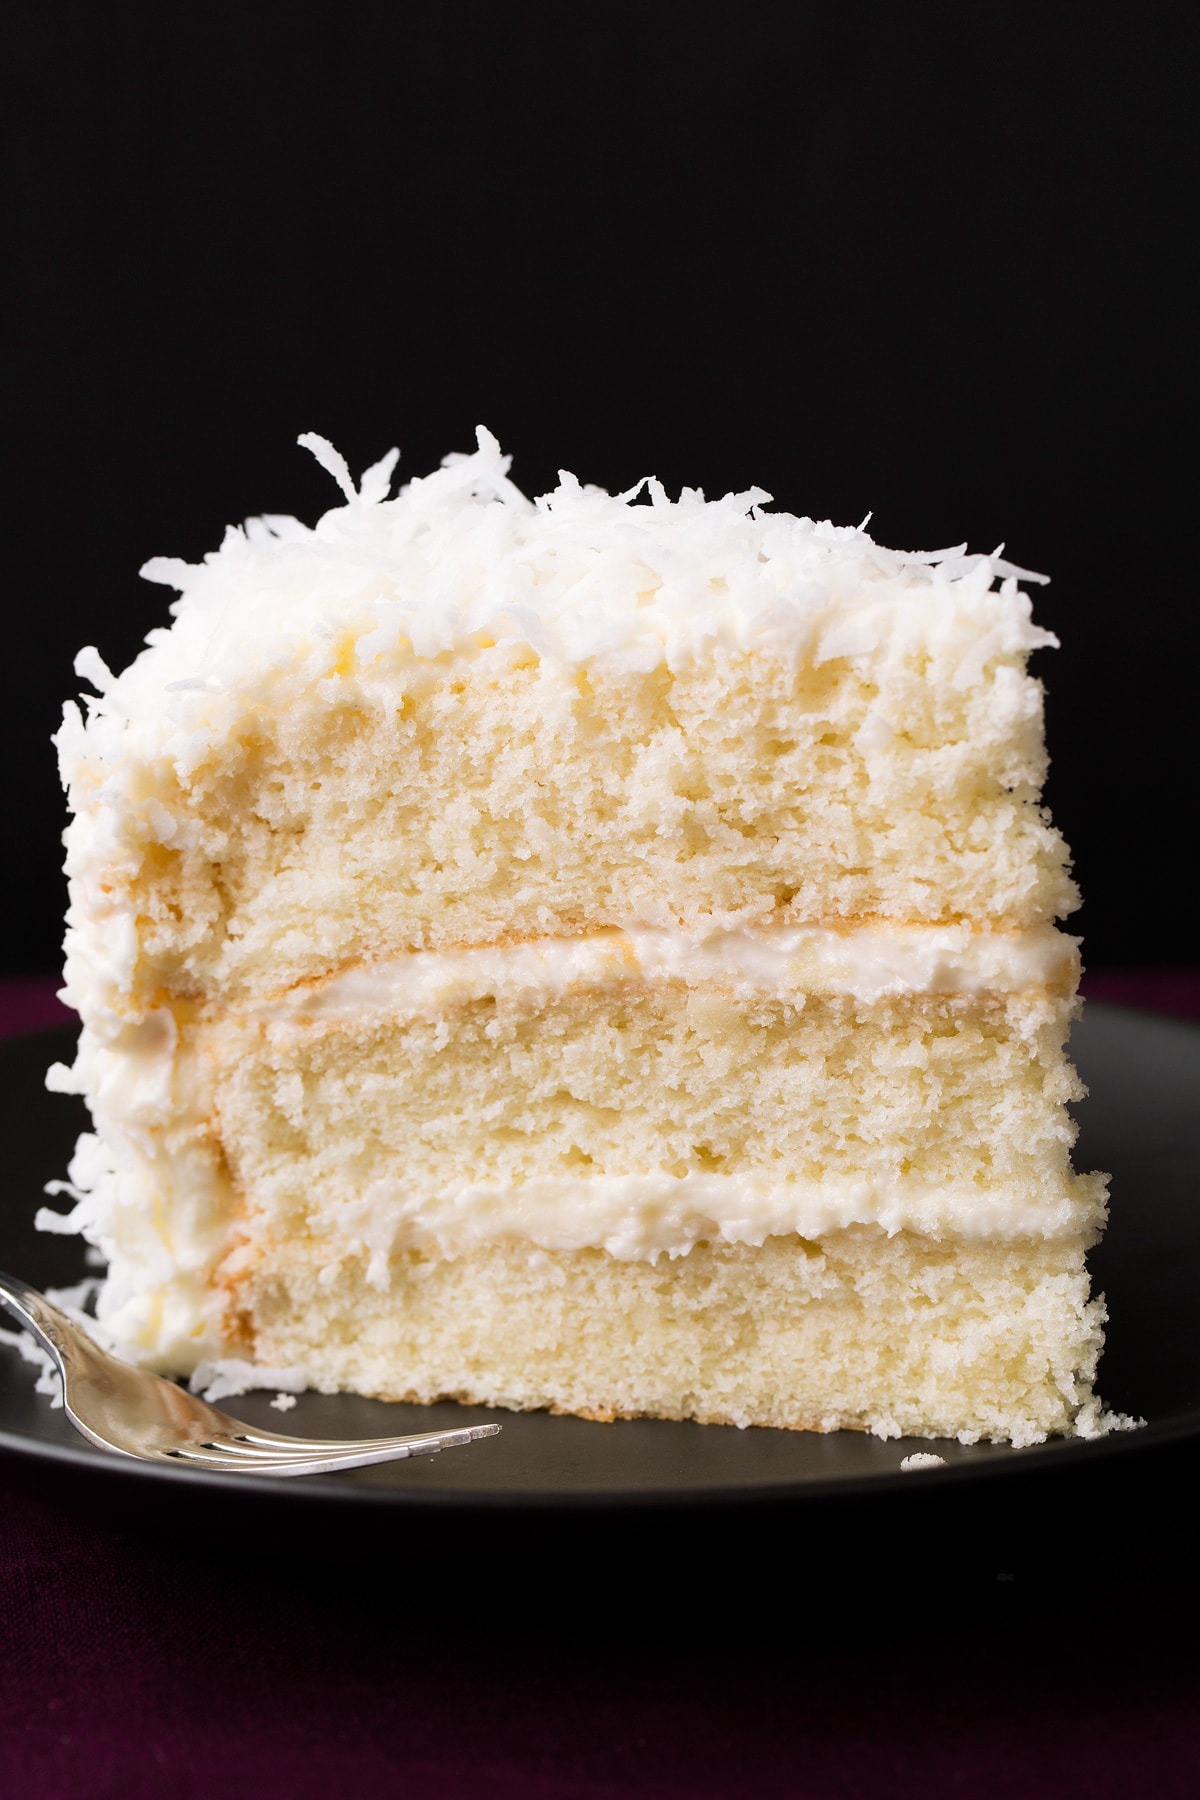 Slice of three layered homemade coconut cake on a black plate with a black background.